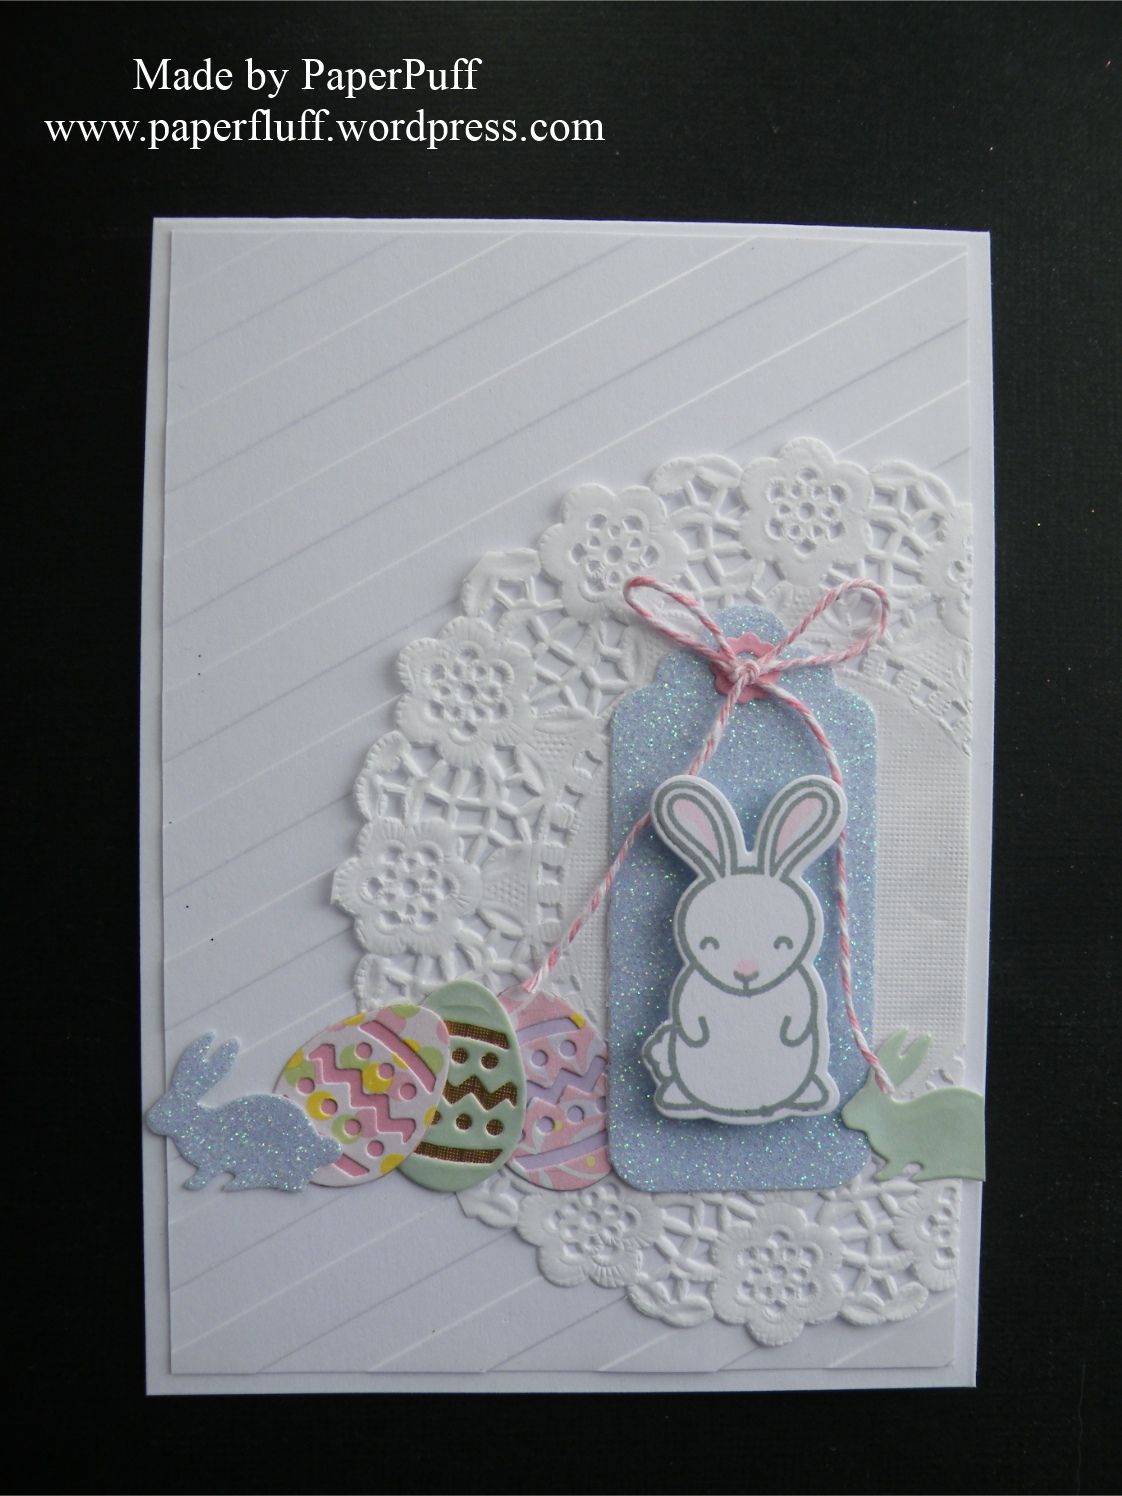 Lawn Fawn Hoppy Easter bunny stamp and die; Docrafts Xcut